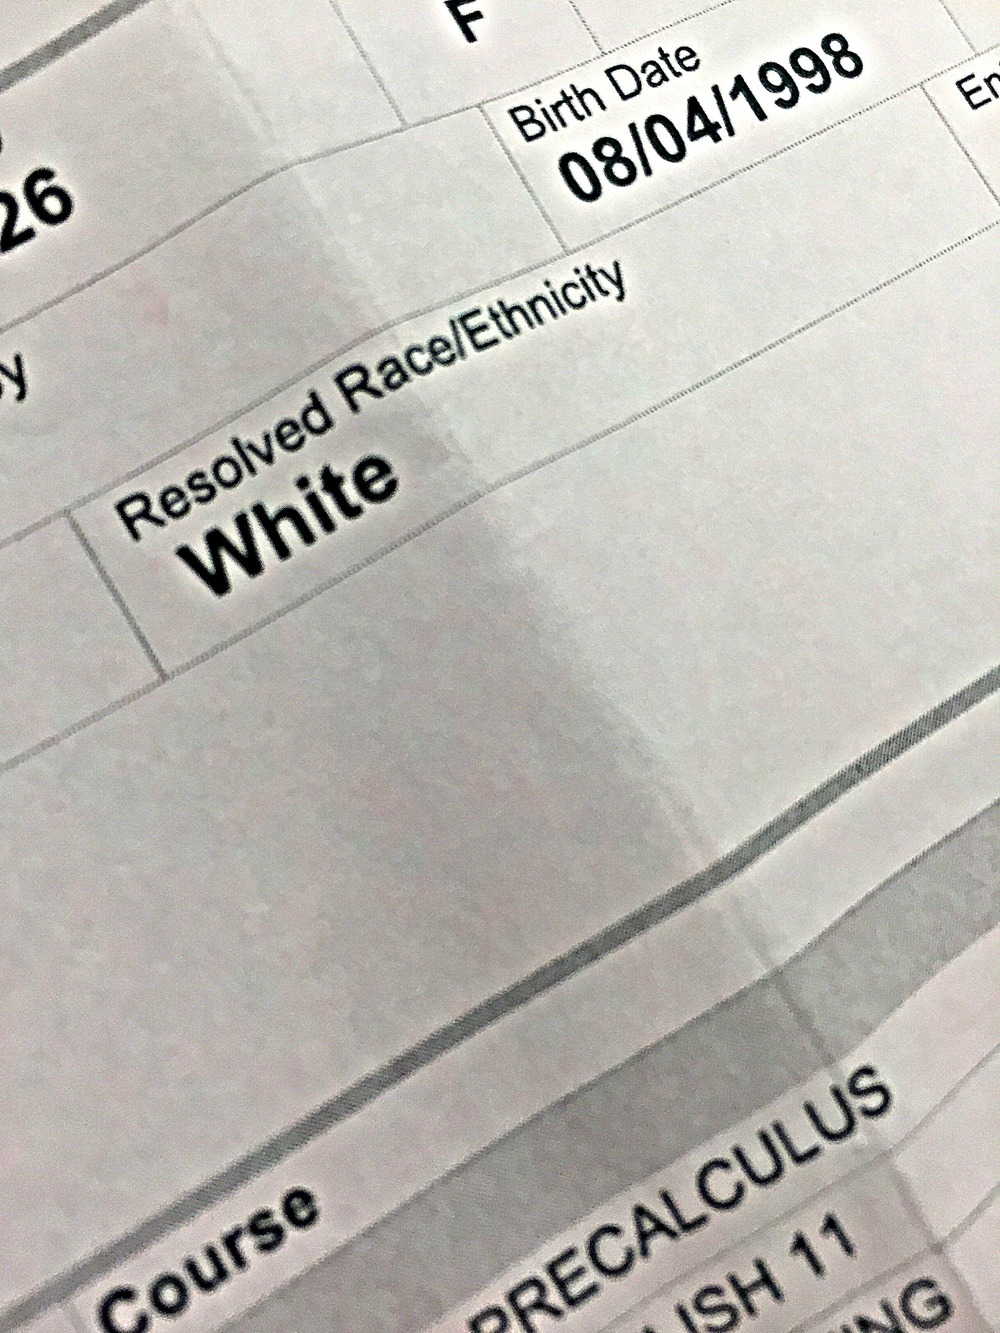 The Race Question on Applications